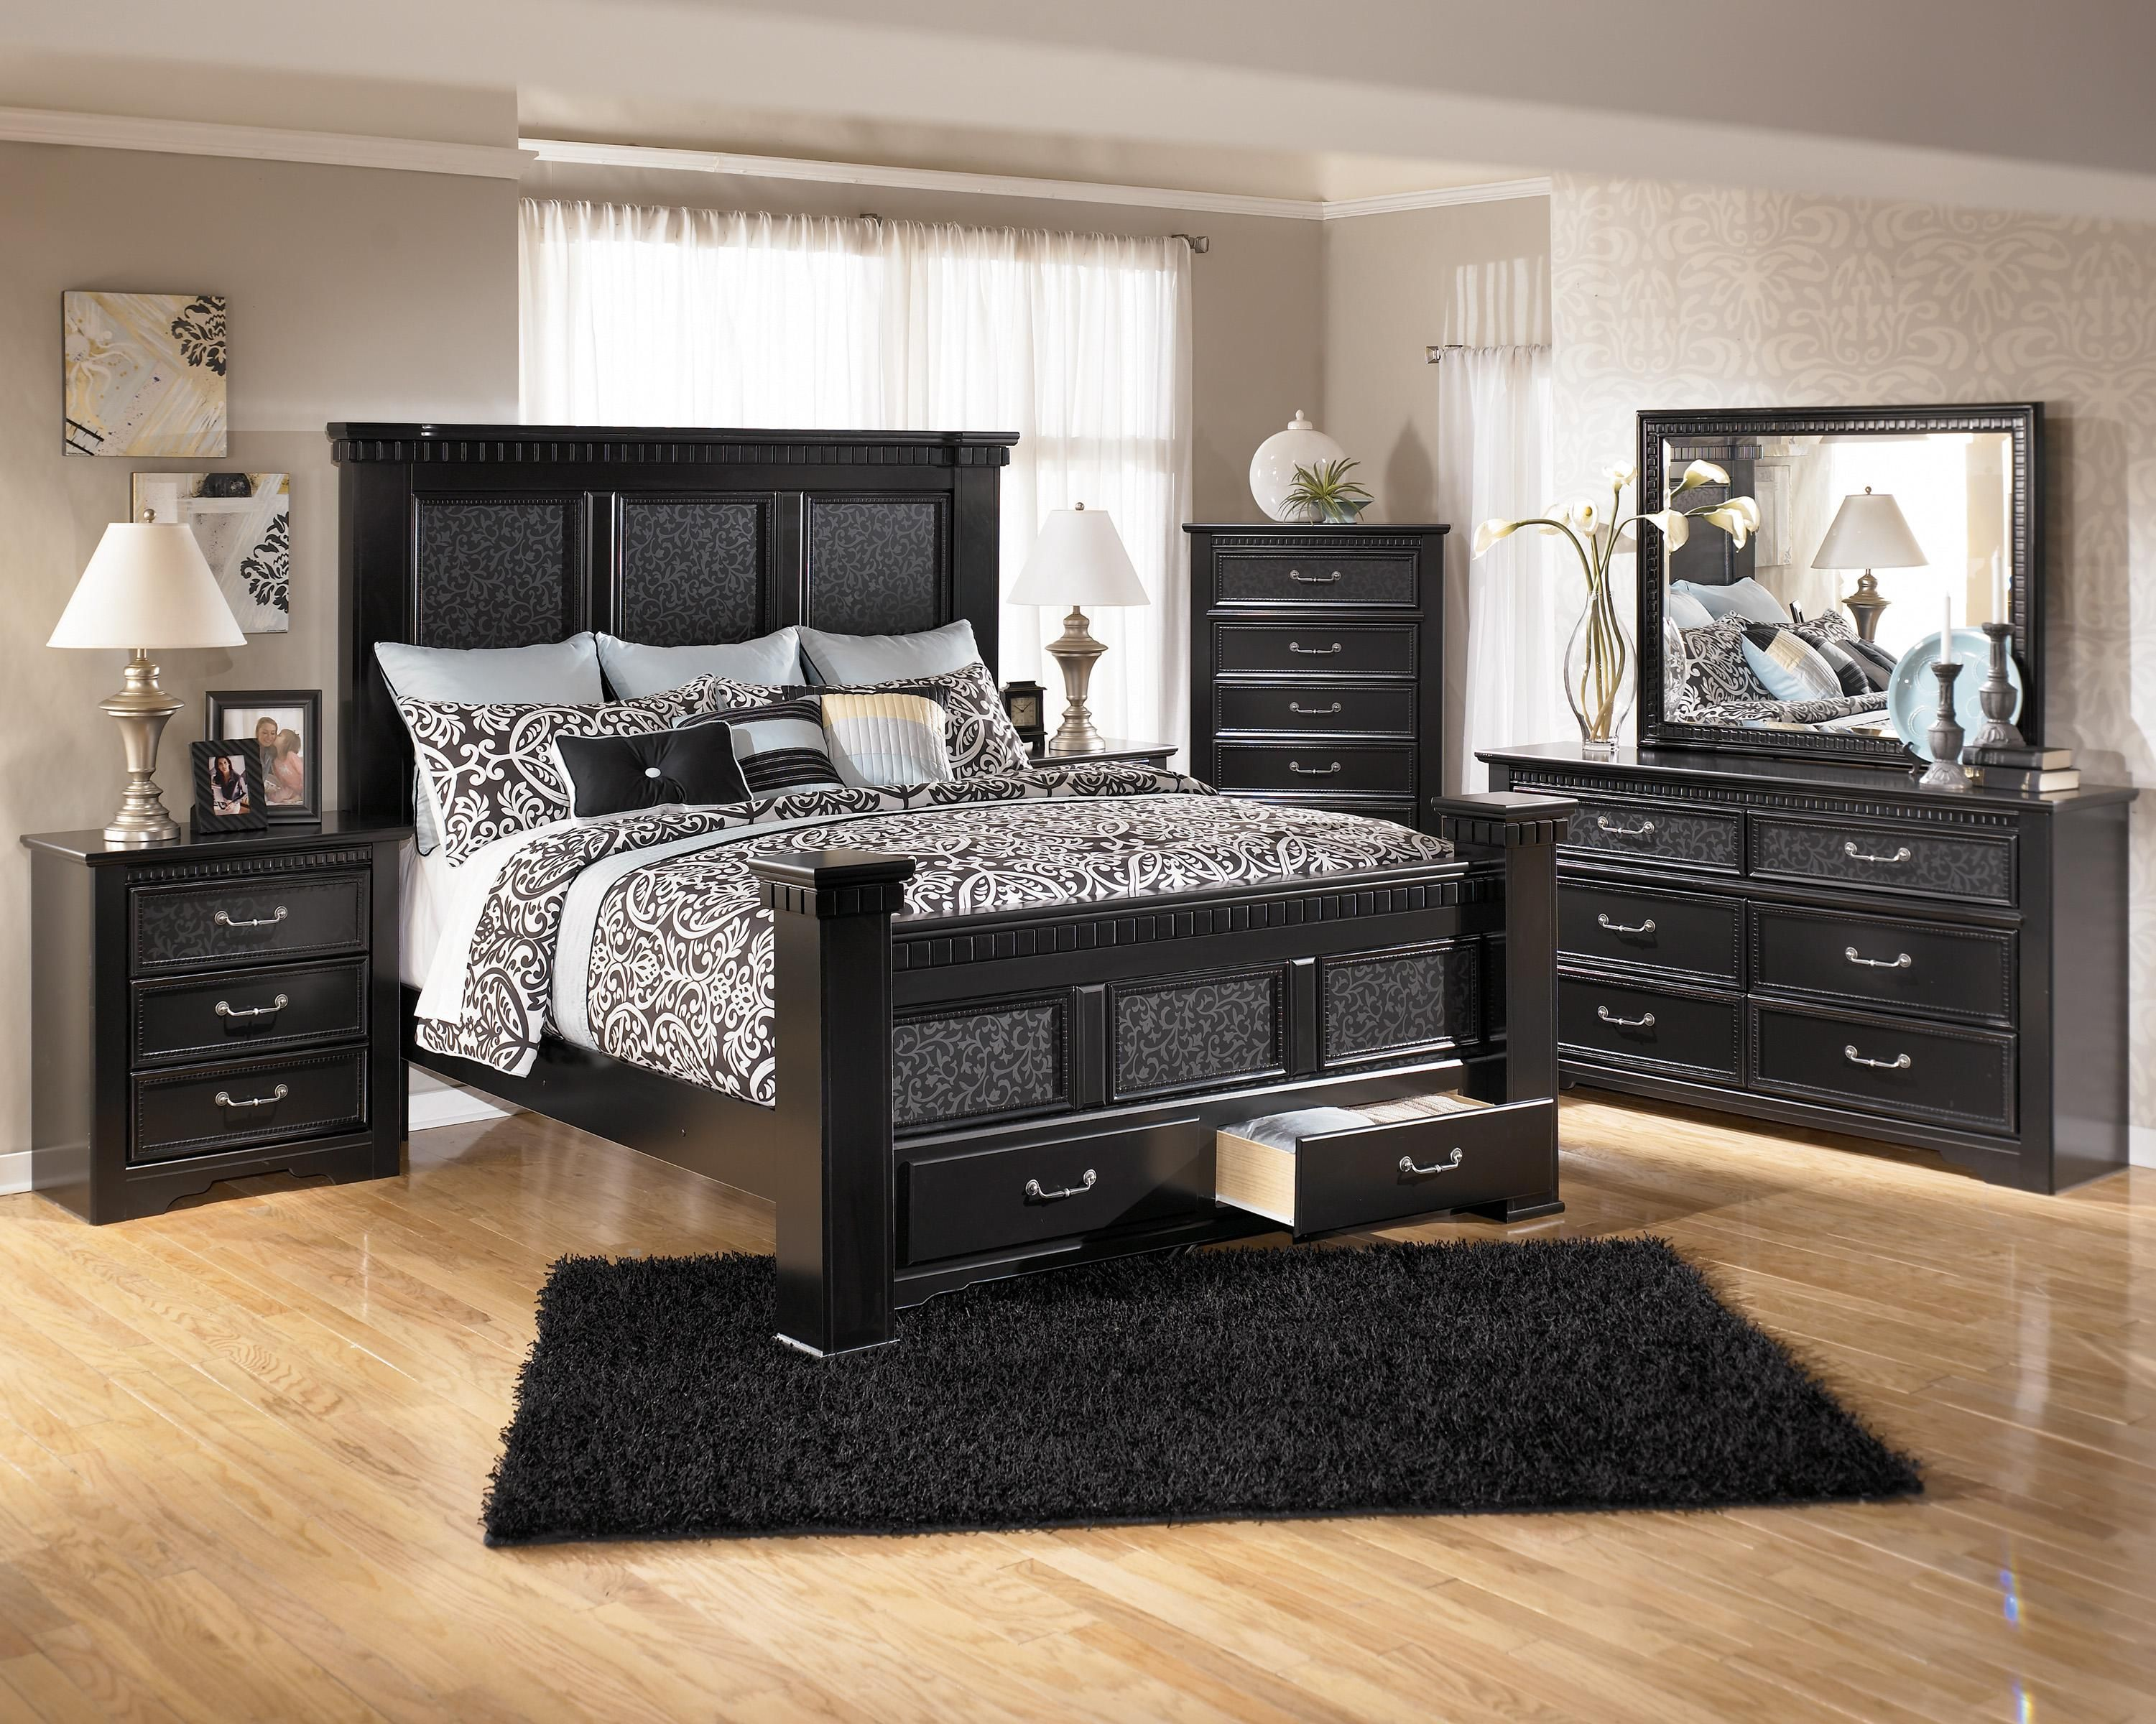 Good Ashley Furniture Cavallino Bedroom Set With Mansion Poster Bed, Storage  Footboard. Bed Only $799.95